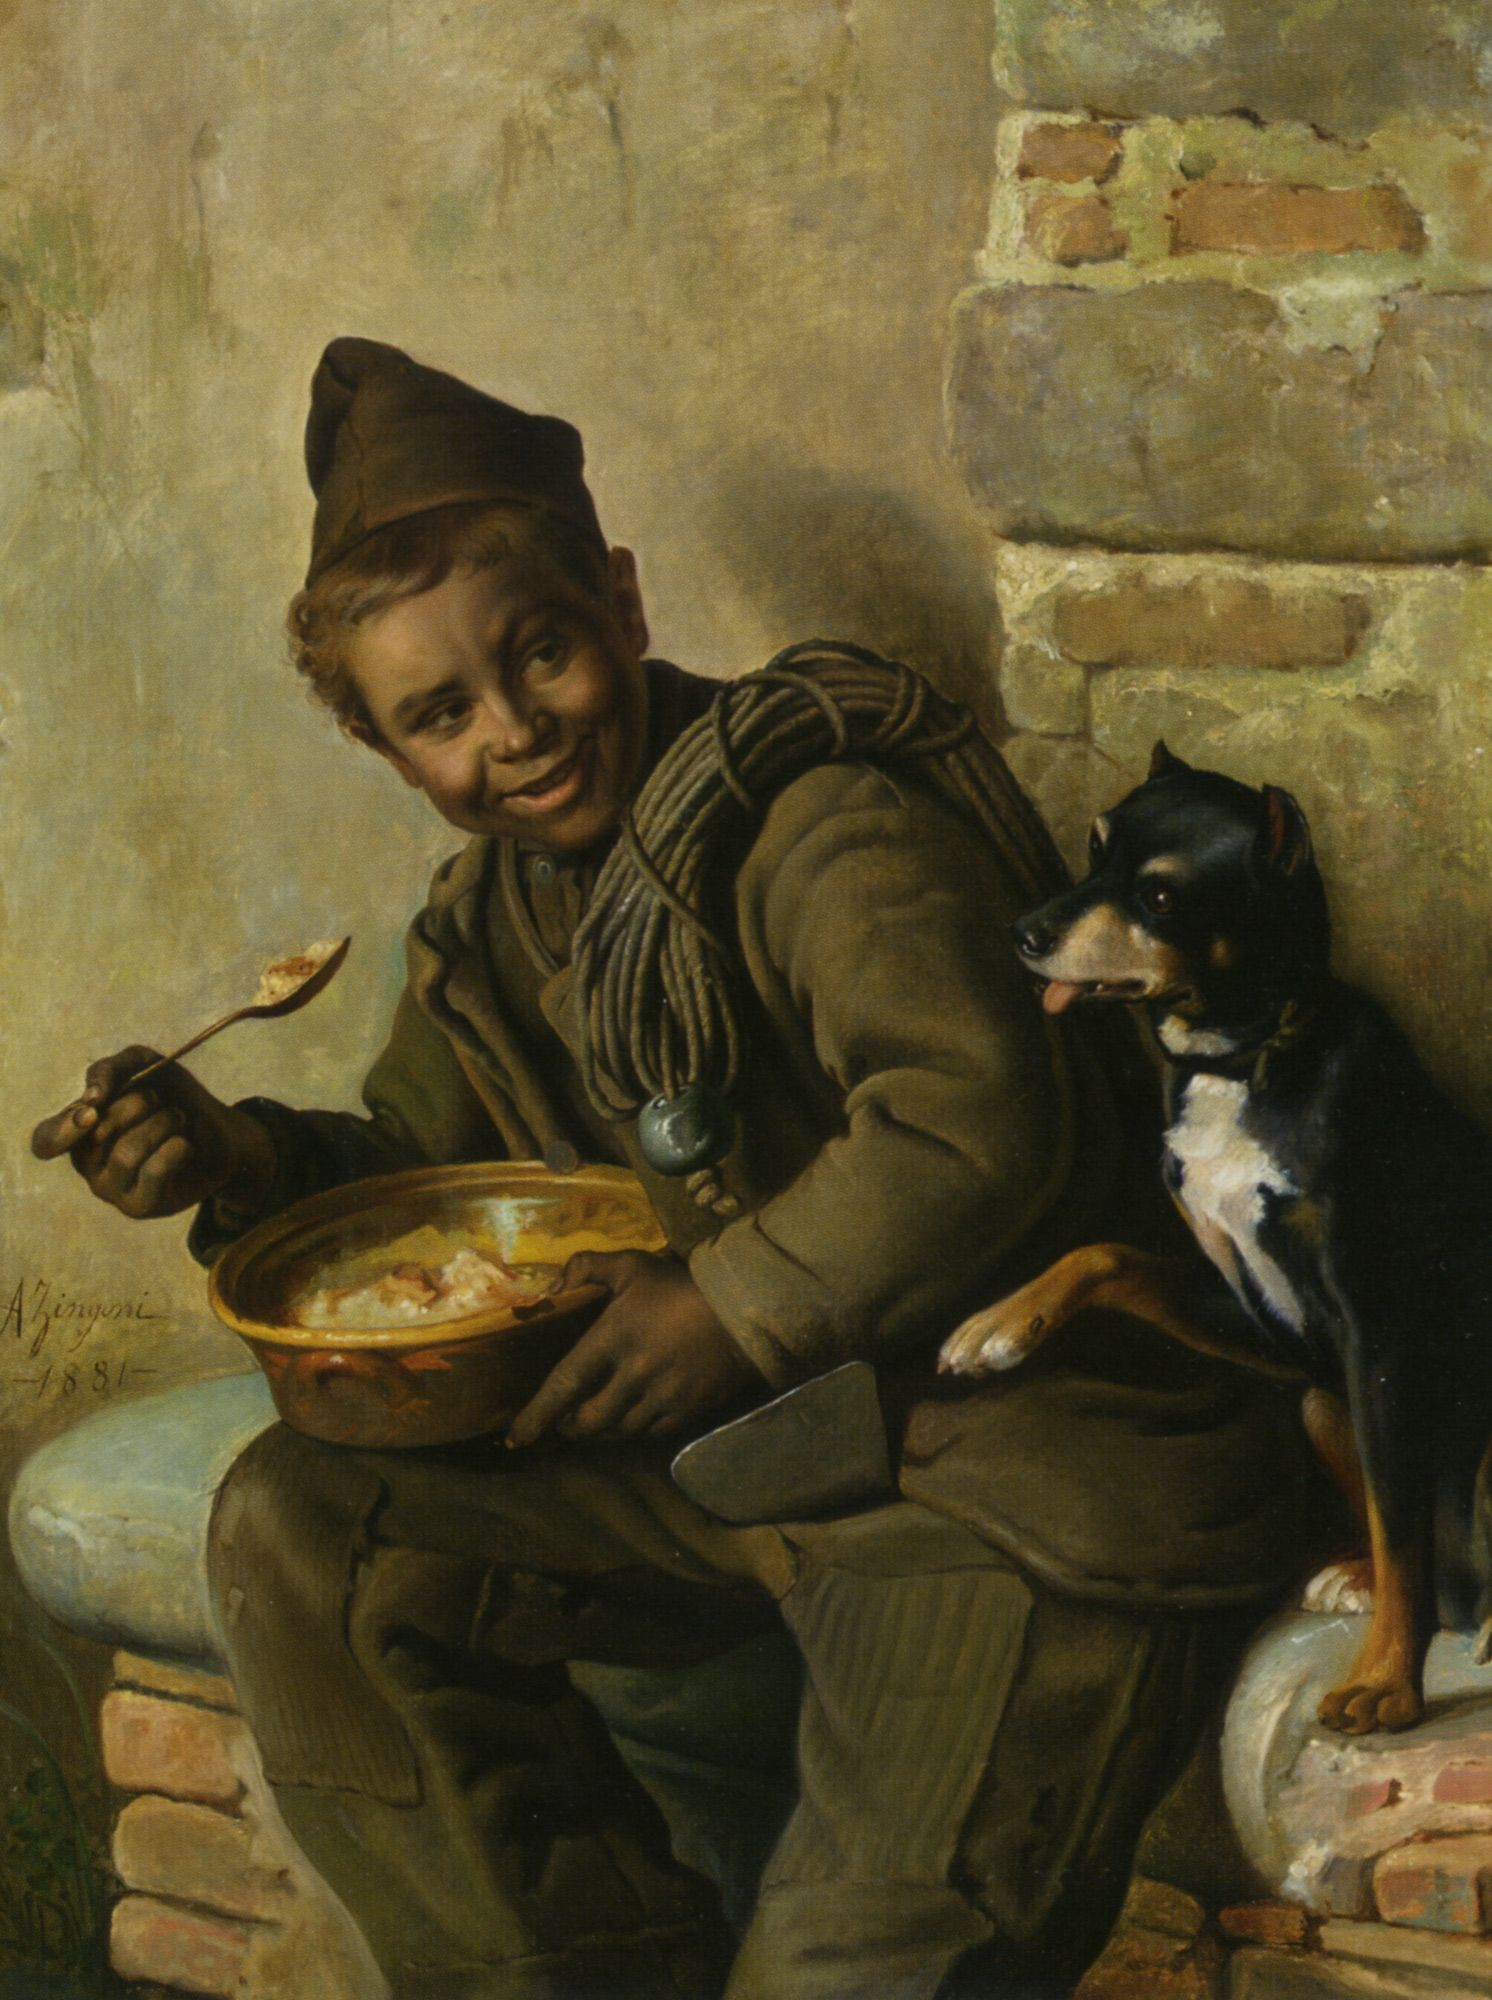 Meal Time For The Chimney Sweep By Aurelio Zingoni